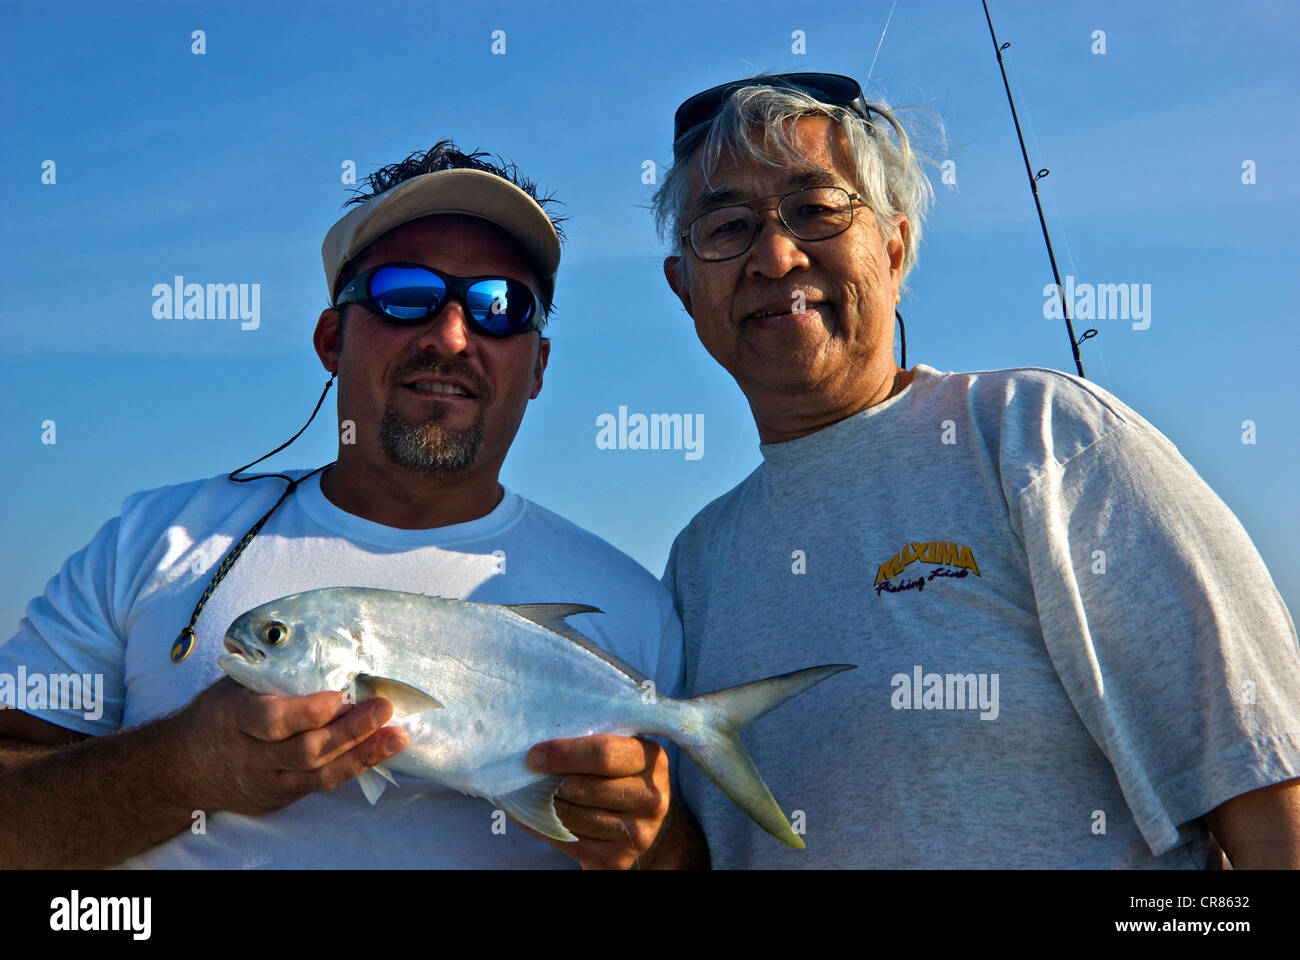 Sport fishing guide holding pompano inshore saltwater game fish Asian male angler Perdido Pass - Stock Image